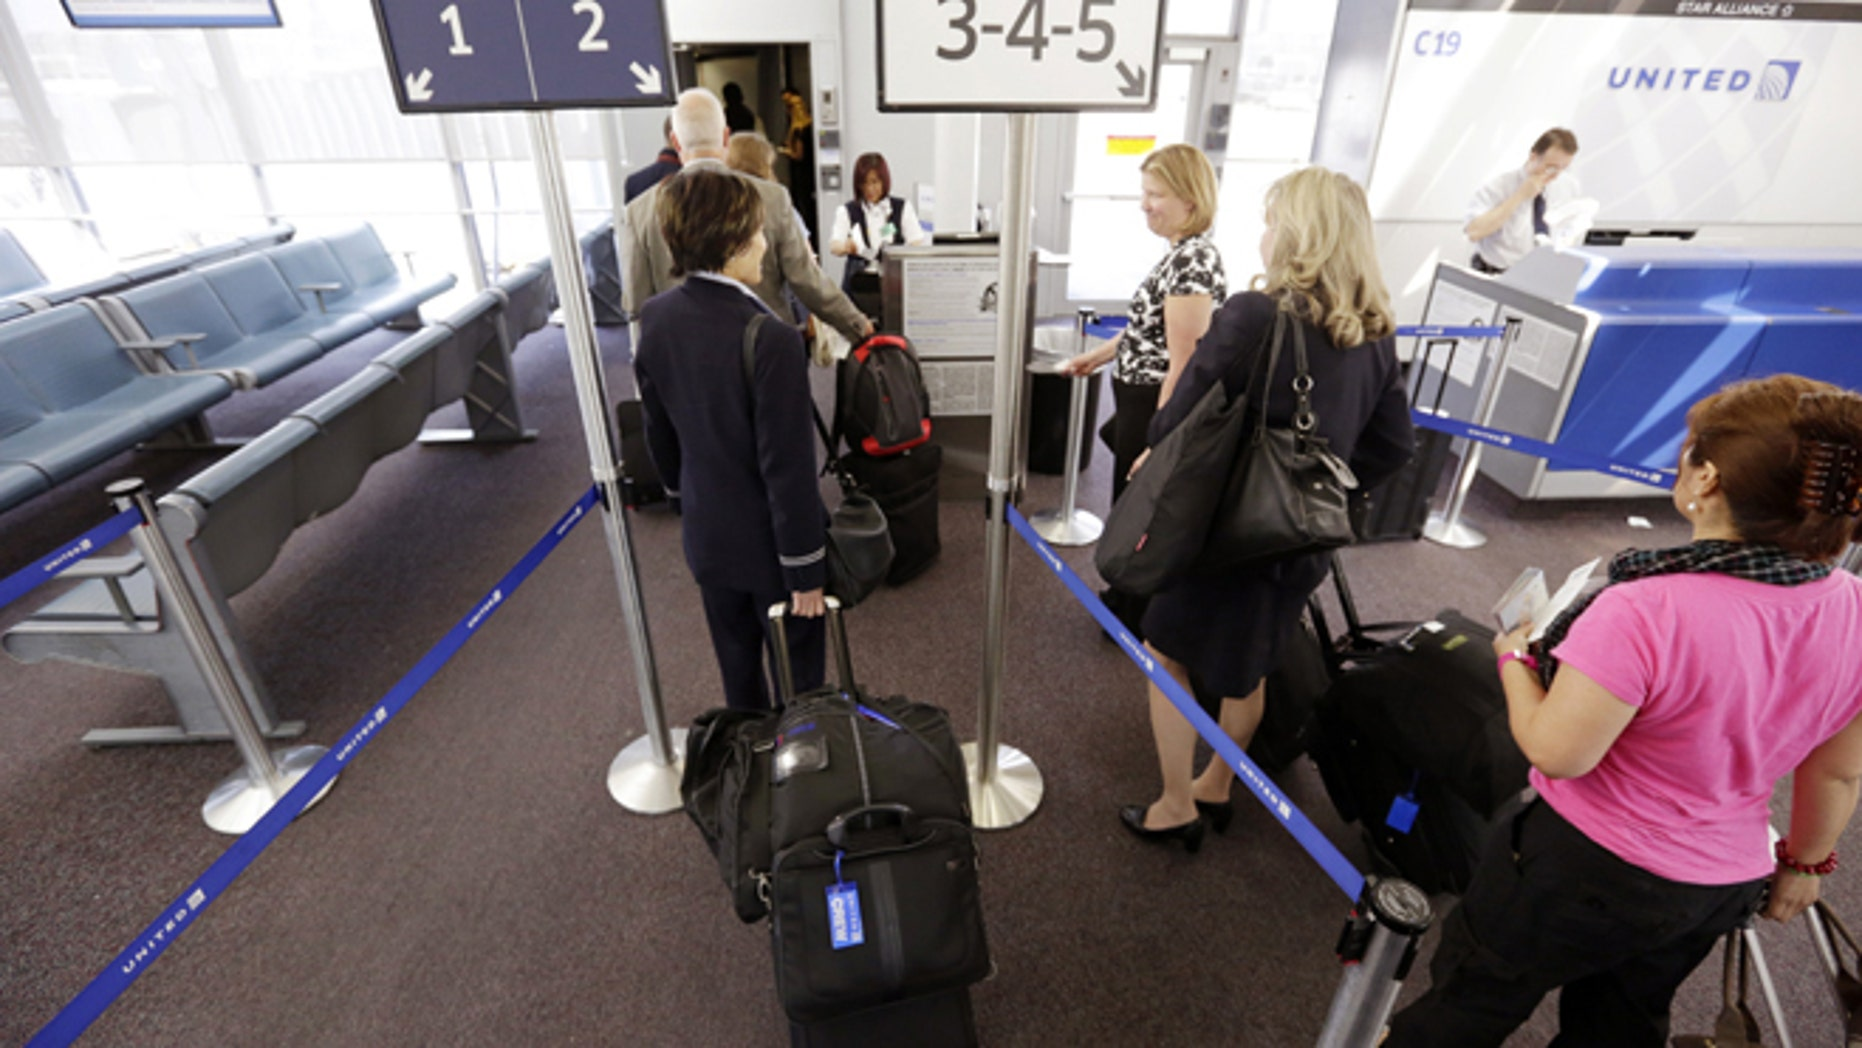 IATA is pulling back on their carry-on baggage recommendation.